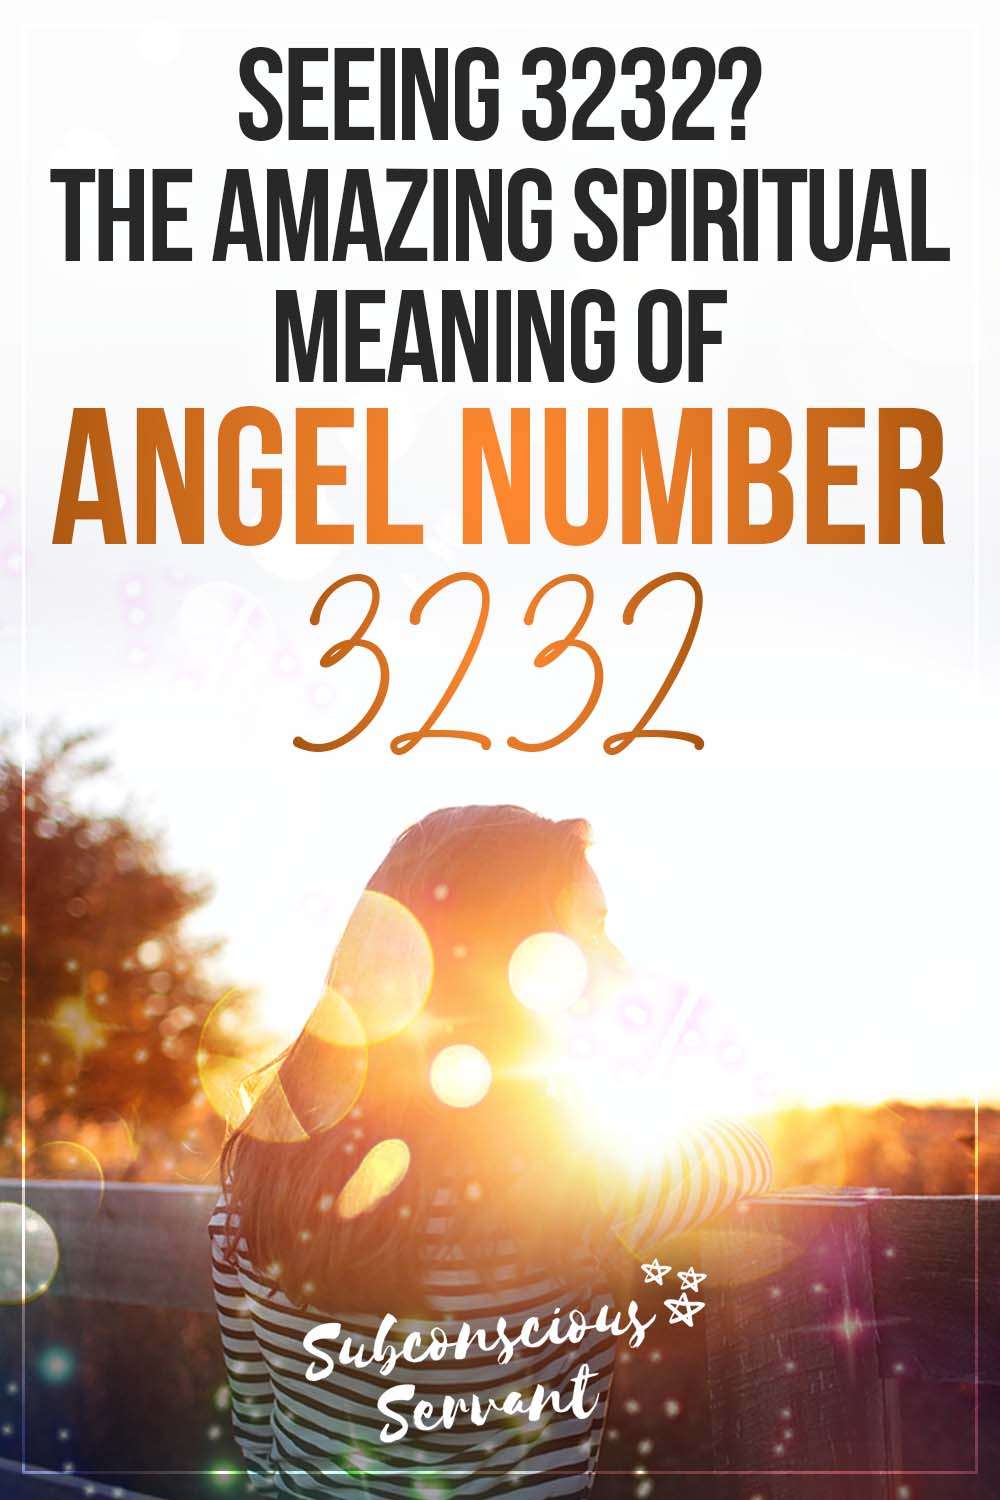 Seeing 3232? The Amazing Spiritual Meaning of Angel Number 3232